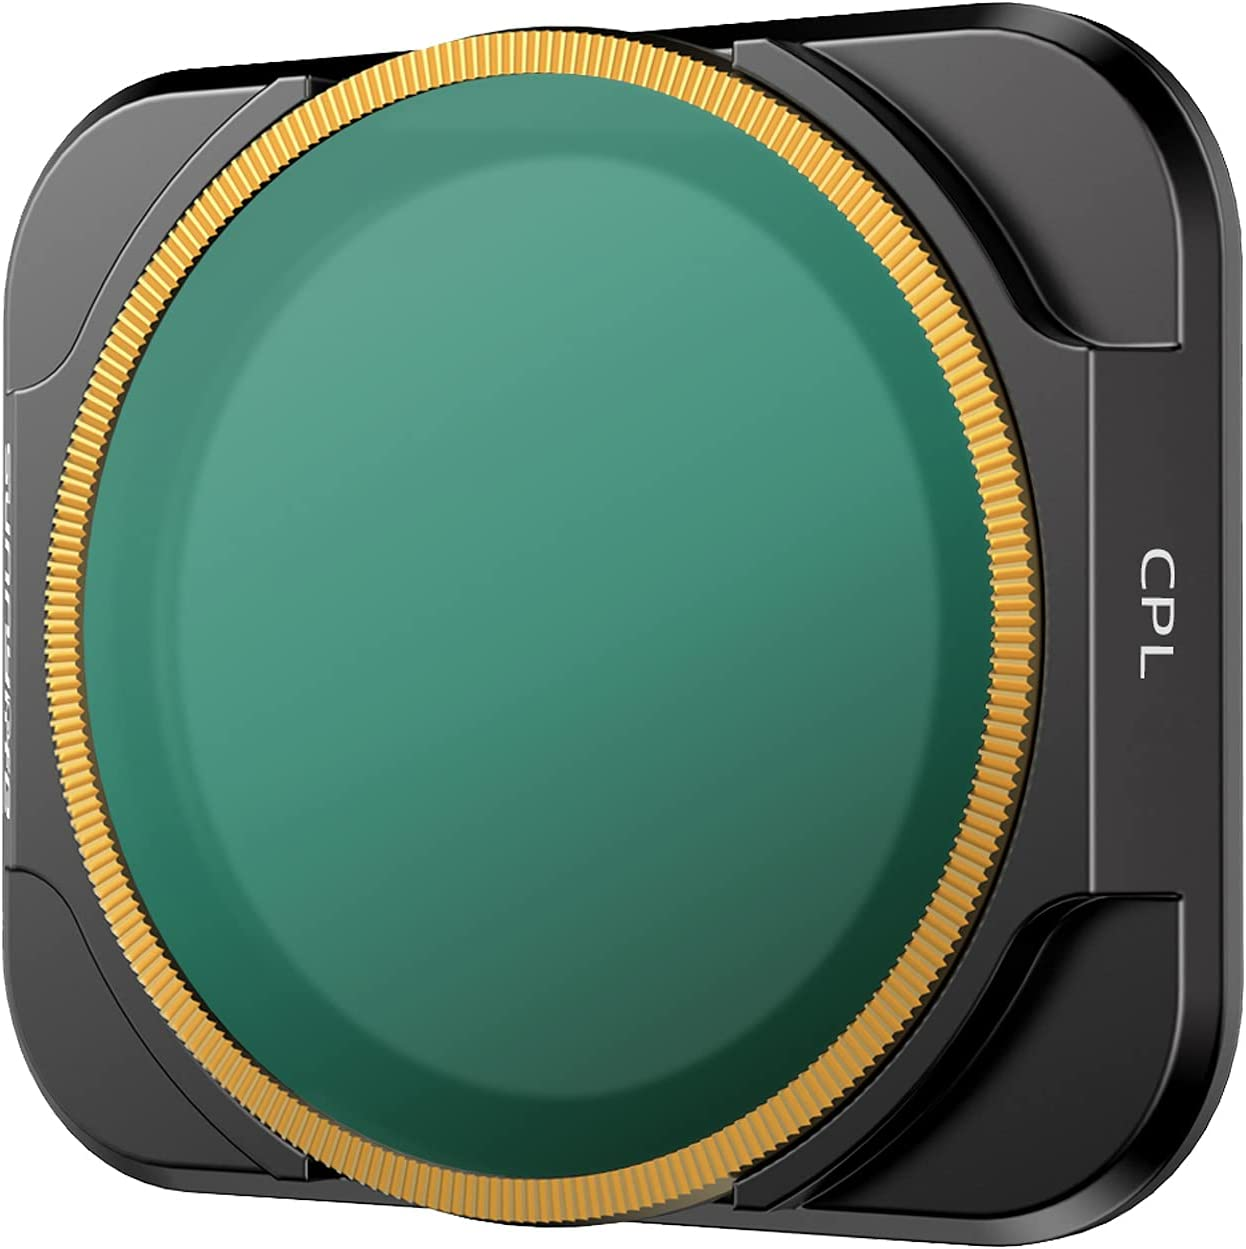 Mavic Air 2s ND Filter Set OFFer MCUV CPL for safety Accessories DJI